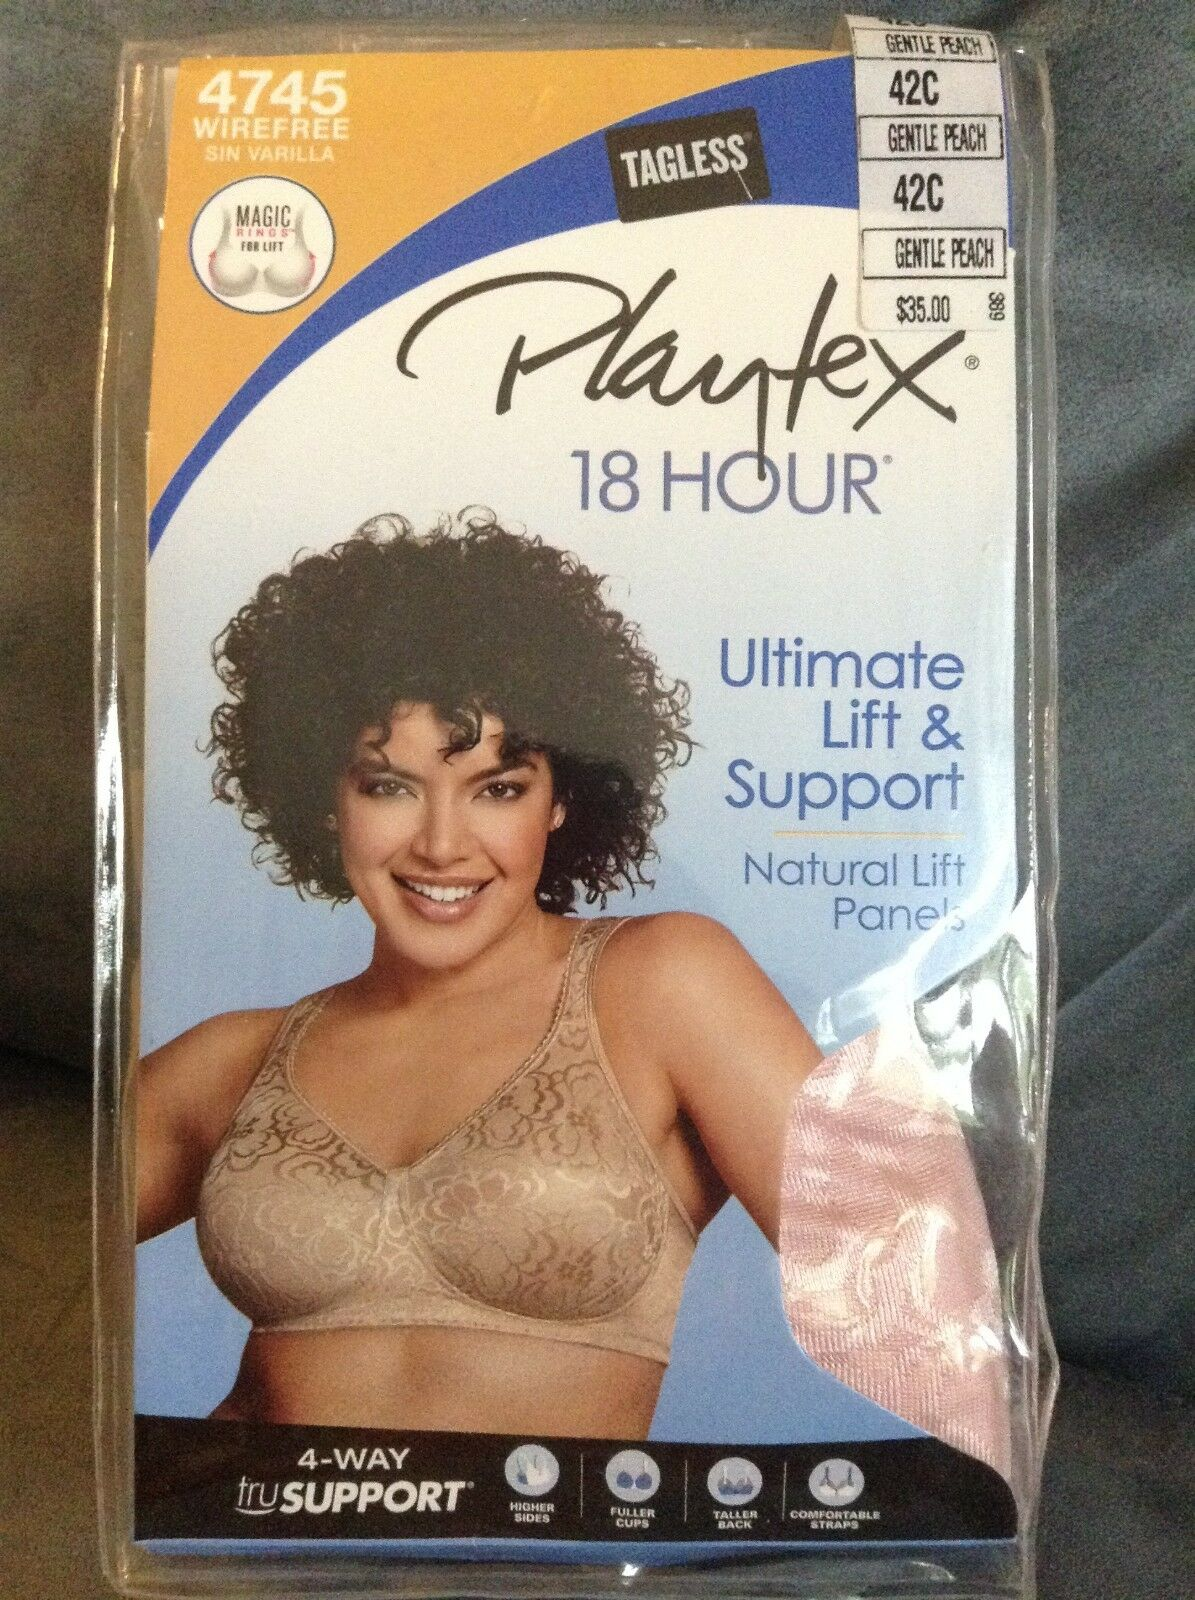 PLAYTEX WIREFREE 18 HOUR TAGLESS BRA LIFT & SUPPORT SIZE 42C GENTLE PEACH